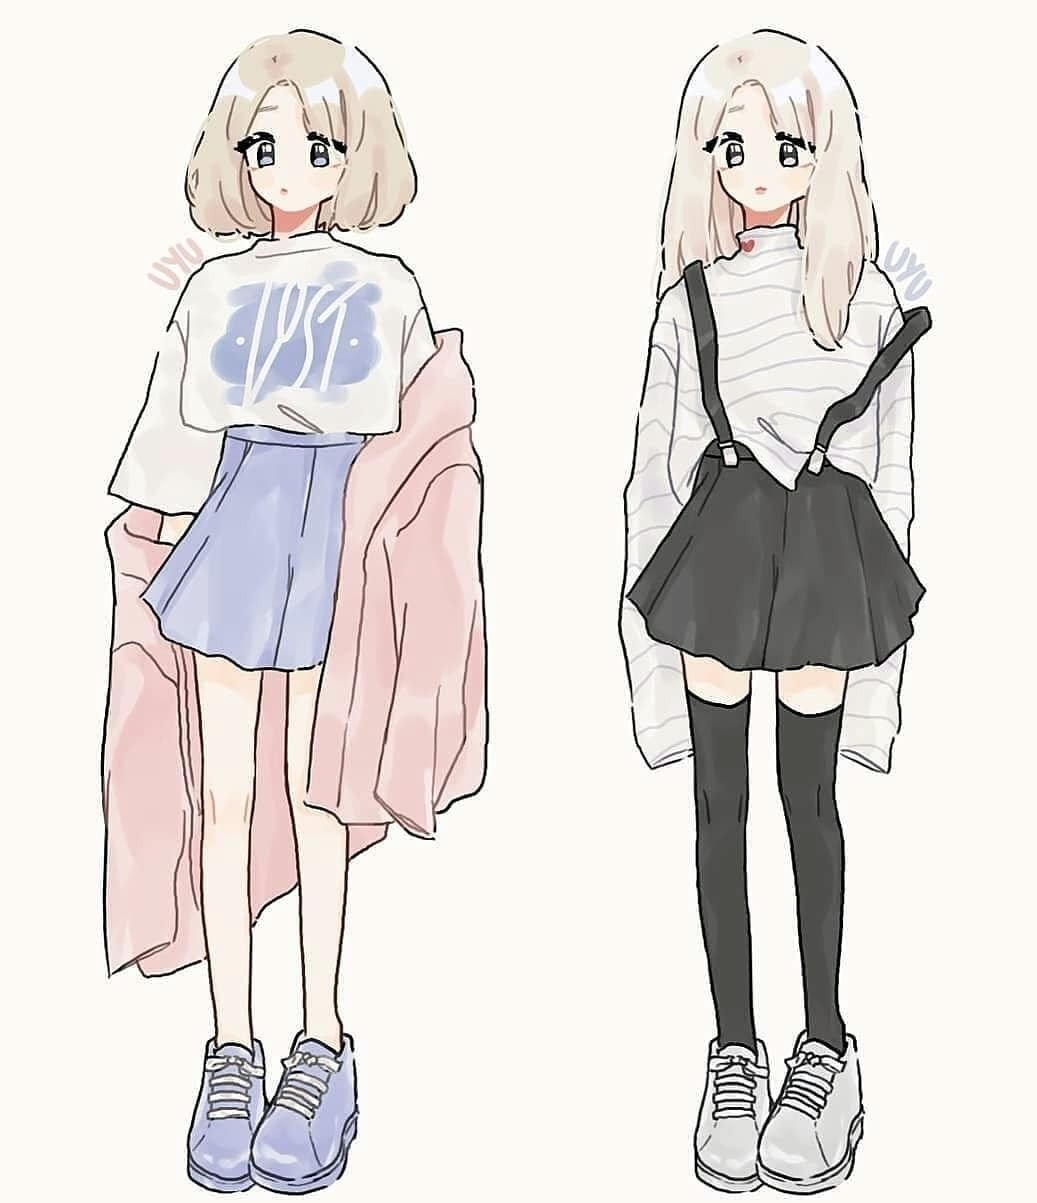 Pin By Sky Sky On Art Drawing Anime Clothes Cute Art Styles Art Clothes